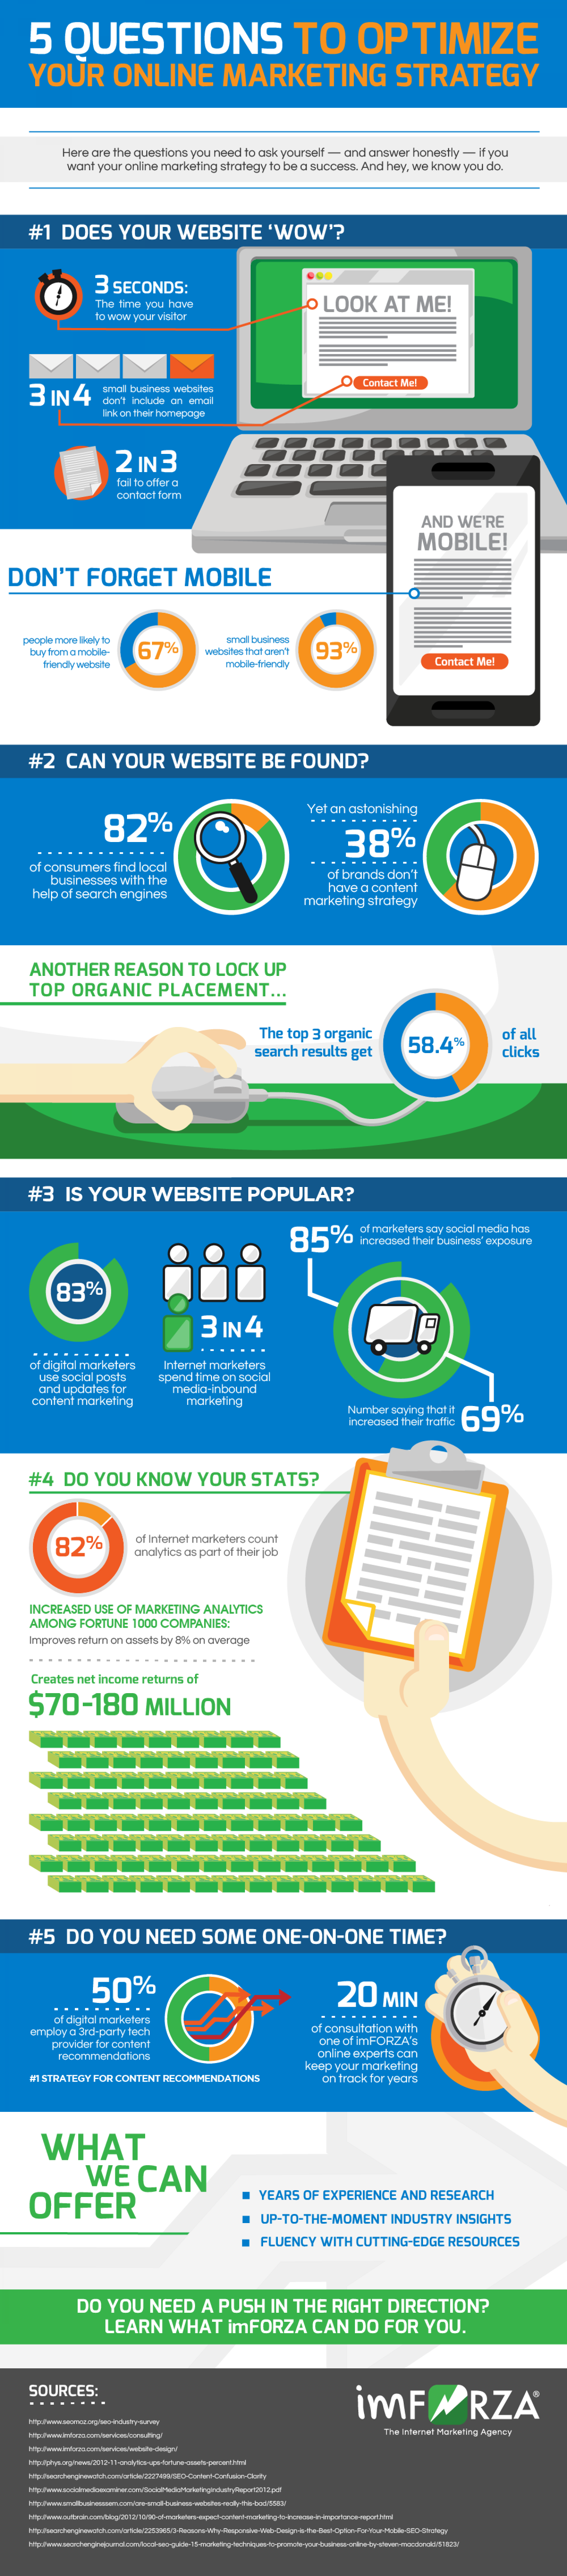 5 Questions to Ask Yourself to Optimize Your Online Strategy Infographic